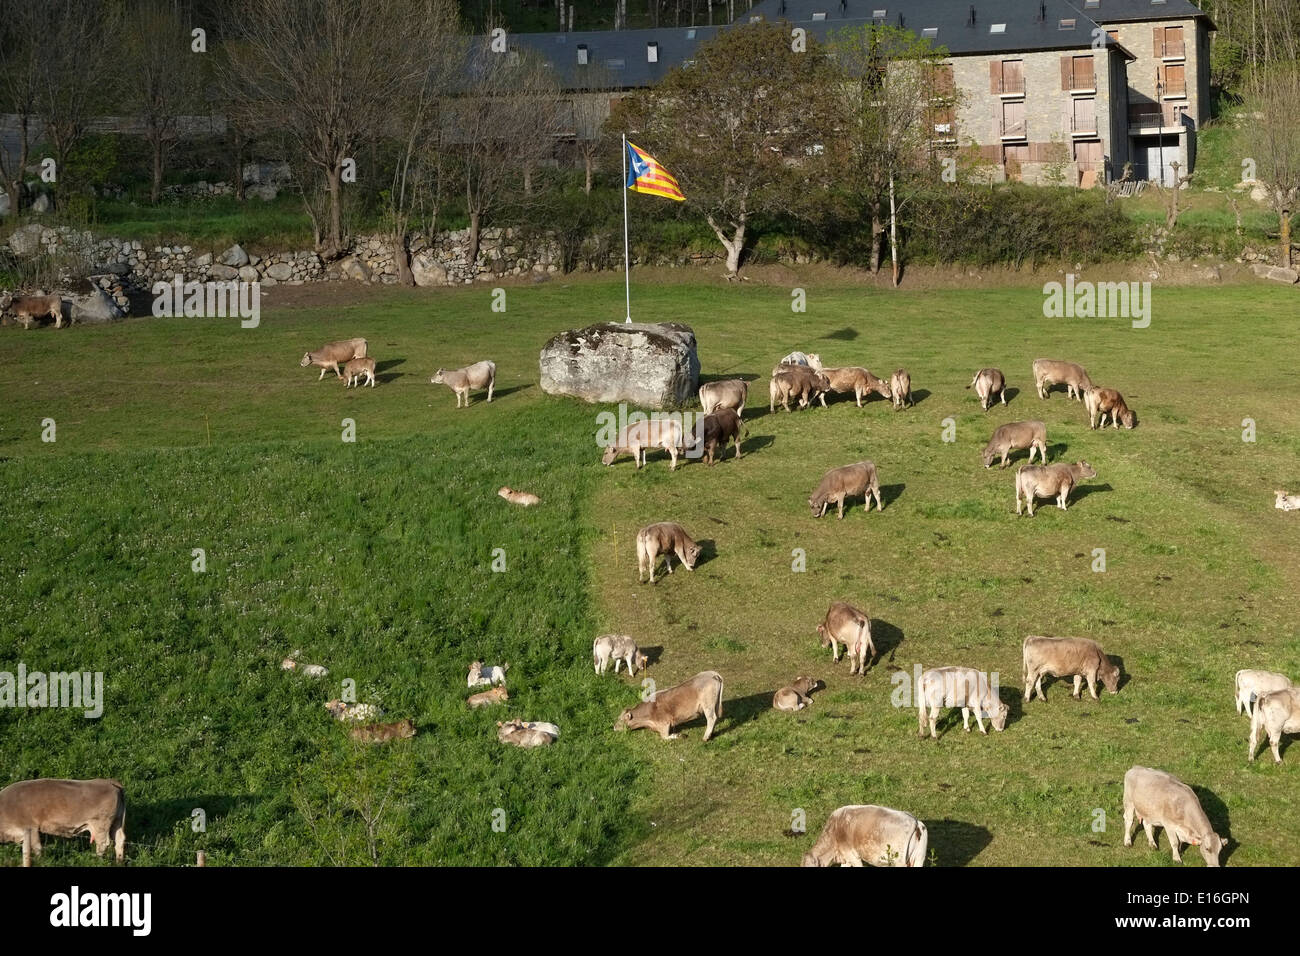 Livestock in Vall de Boi valley in the high Pyrenees, in the Alta Ribagorca region of the Province of Lleida Catalonia Spain - Stock Image